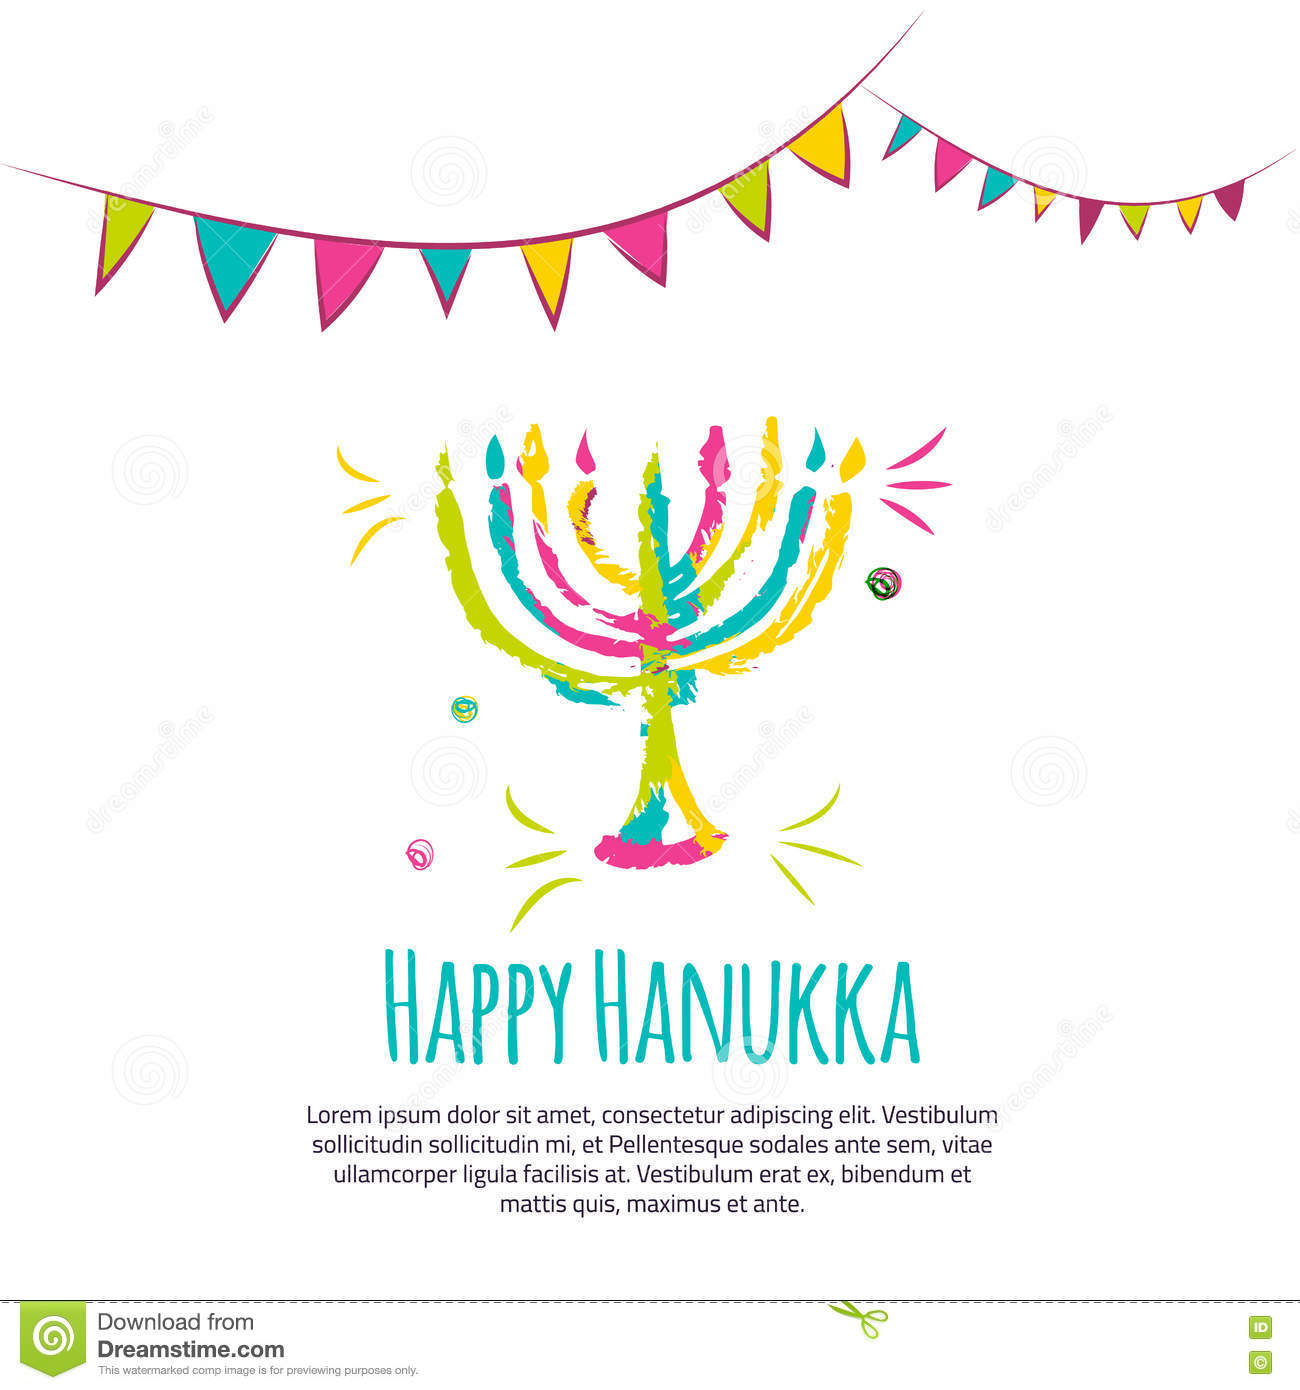 Happy Hanukkah colorful greeting card with hand drawn elements on white background.